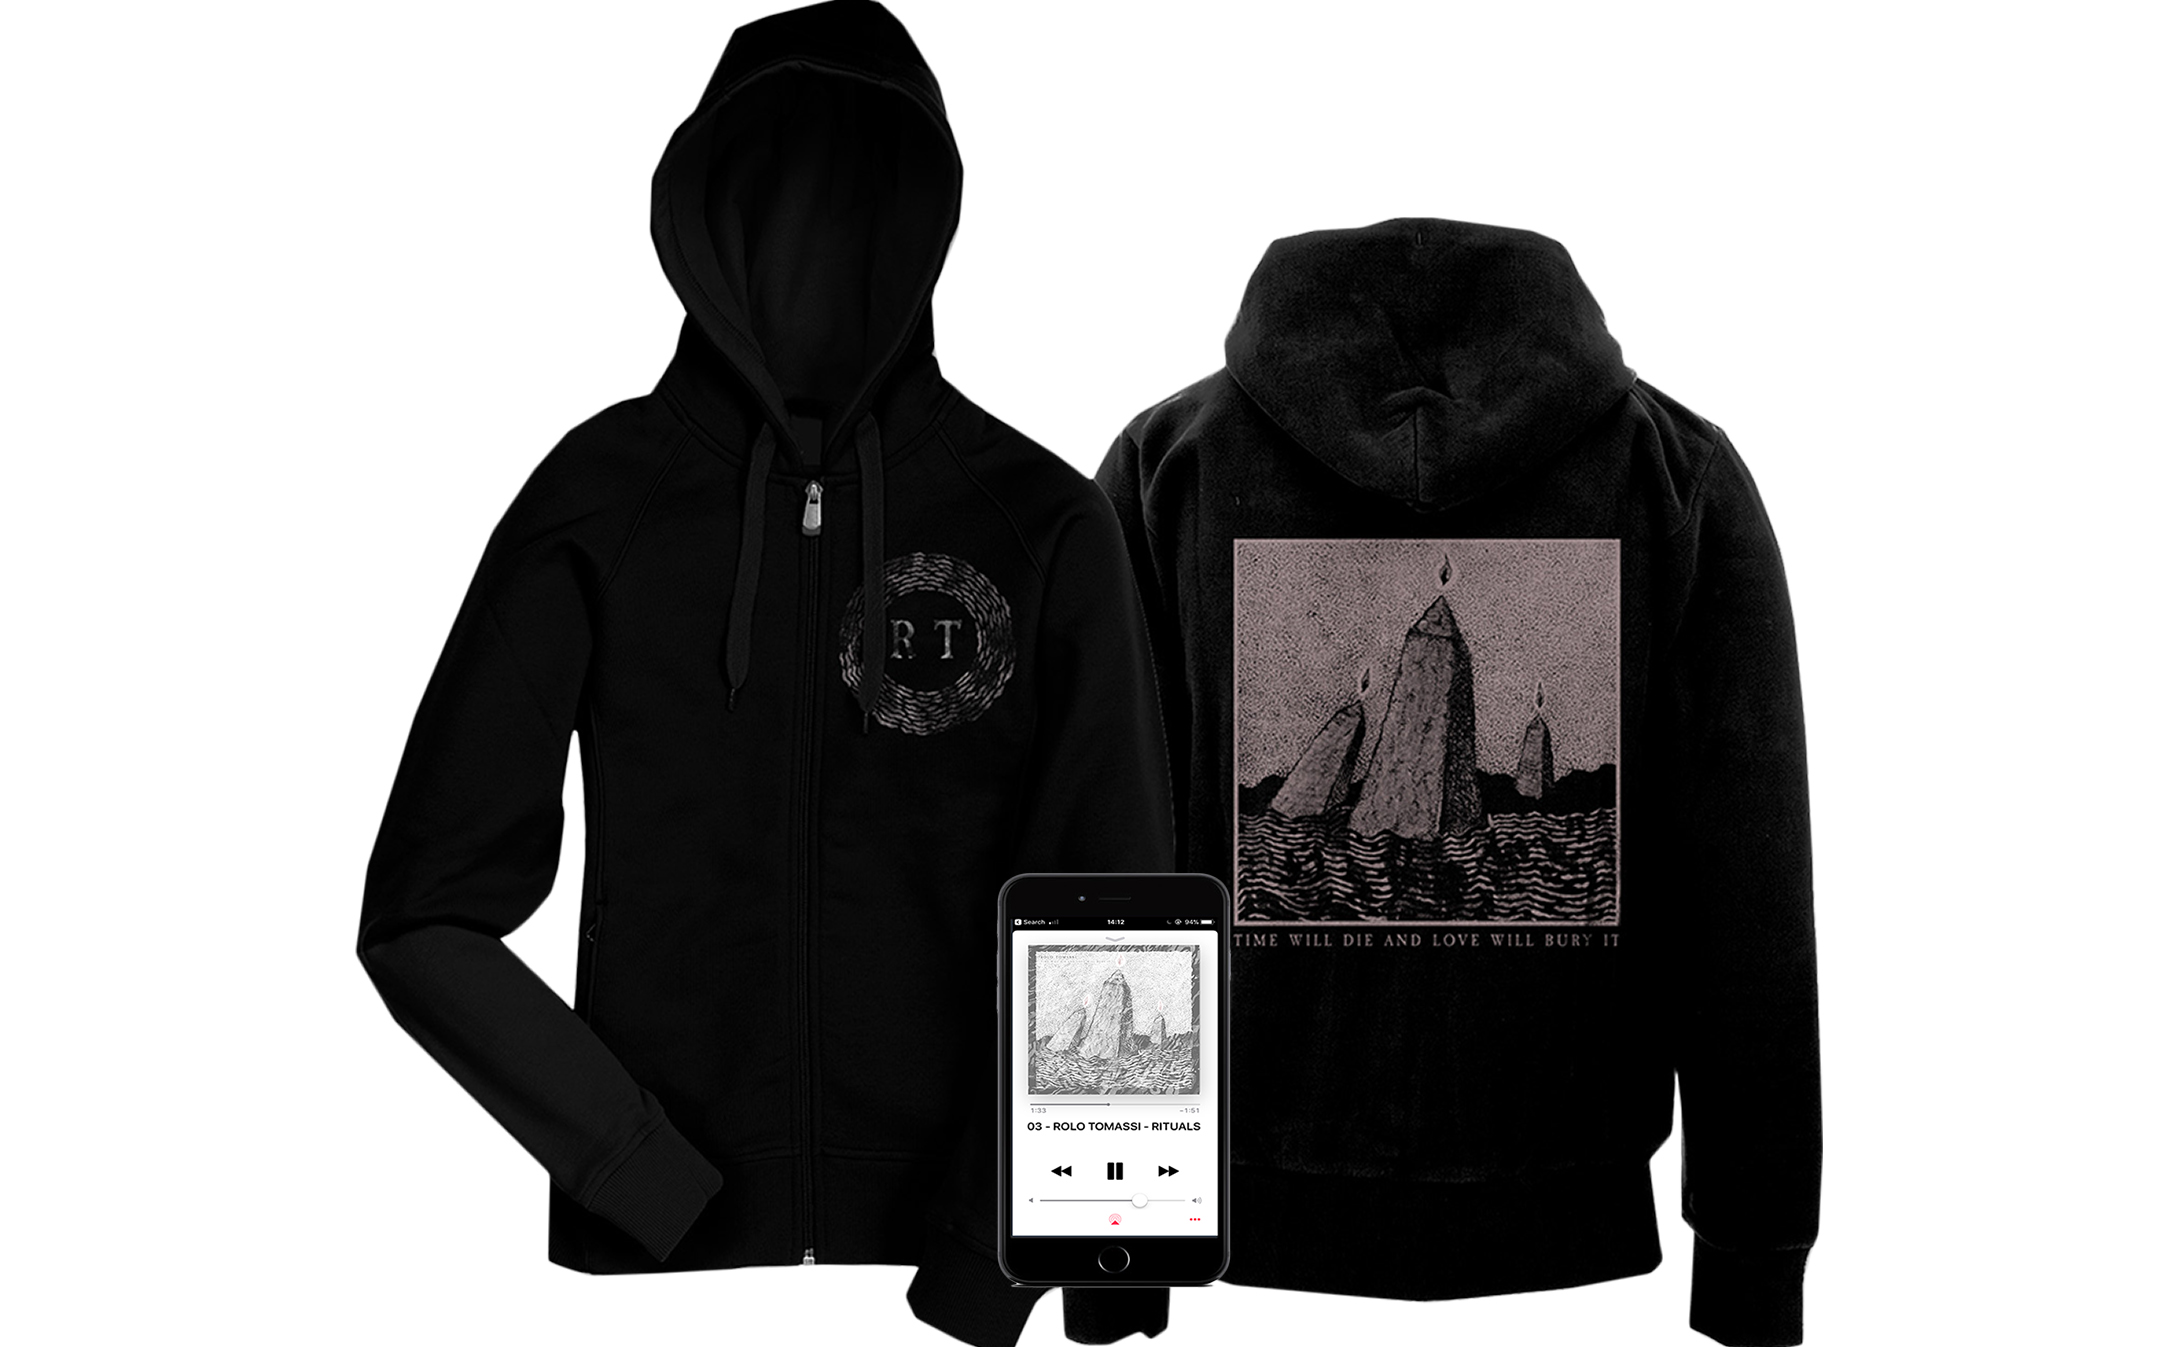 Rolo Tomassi - '...Love Will Bury It' DD + hoodie